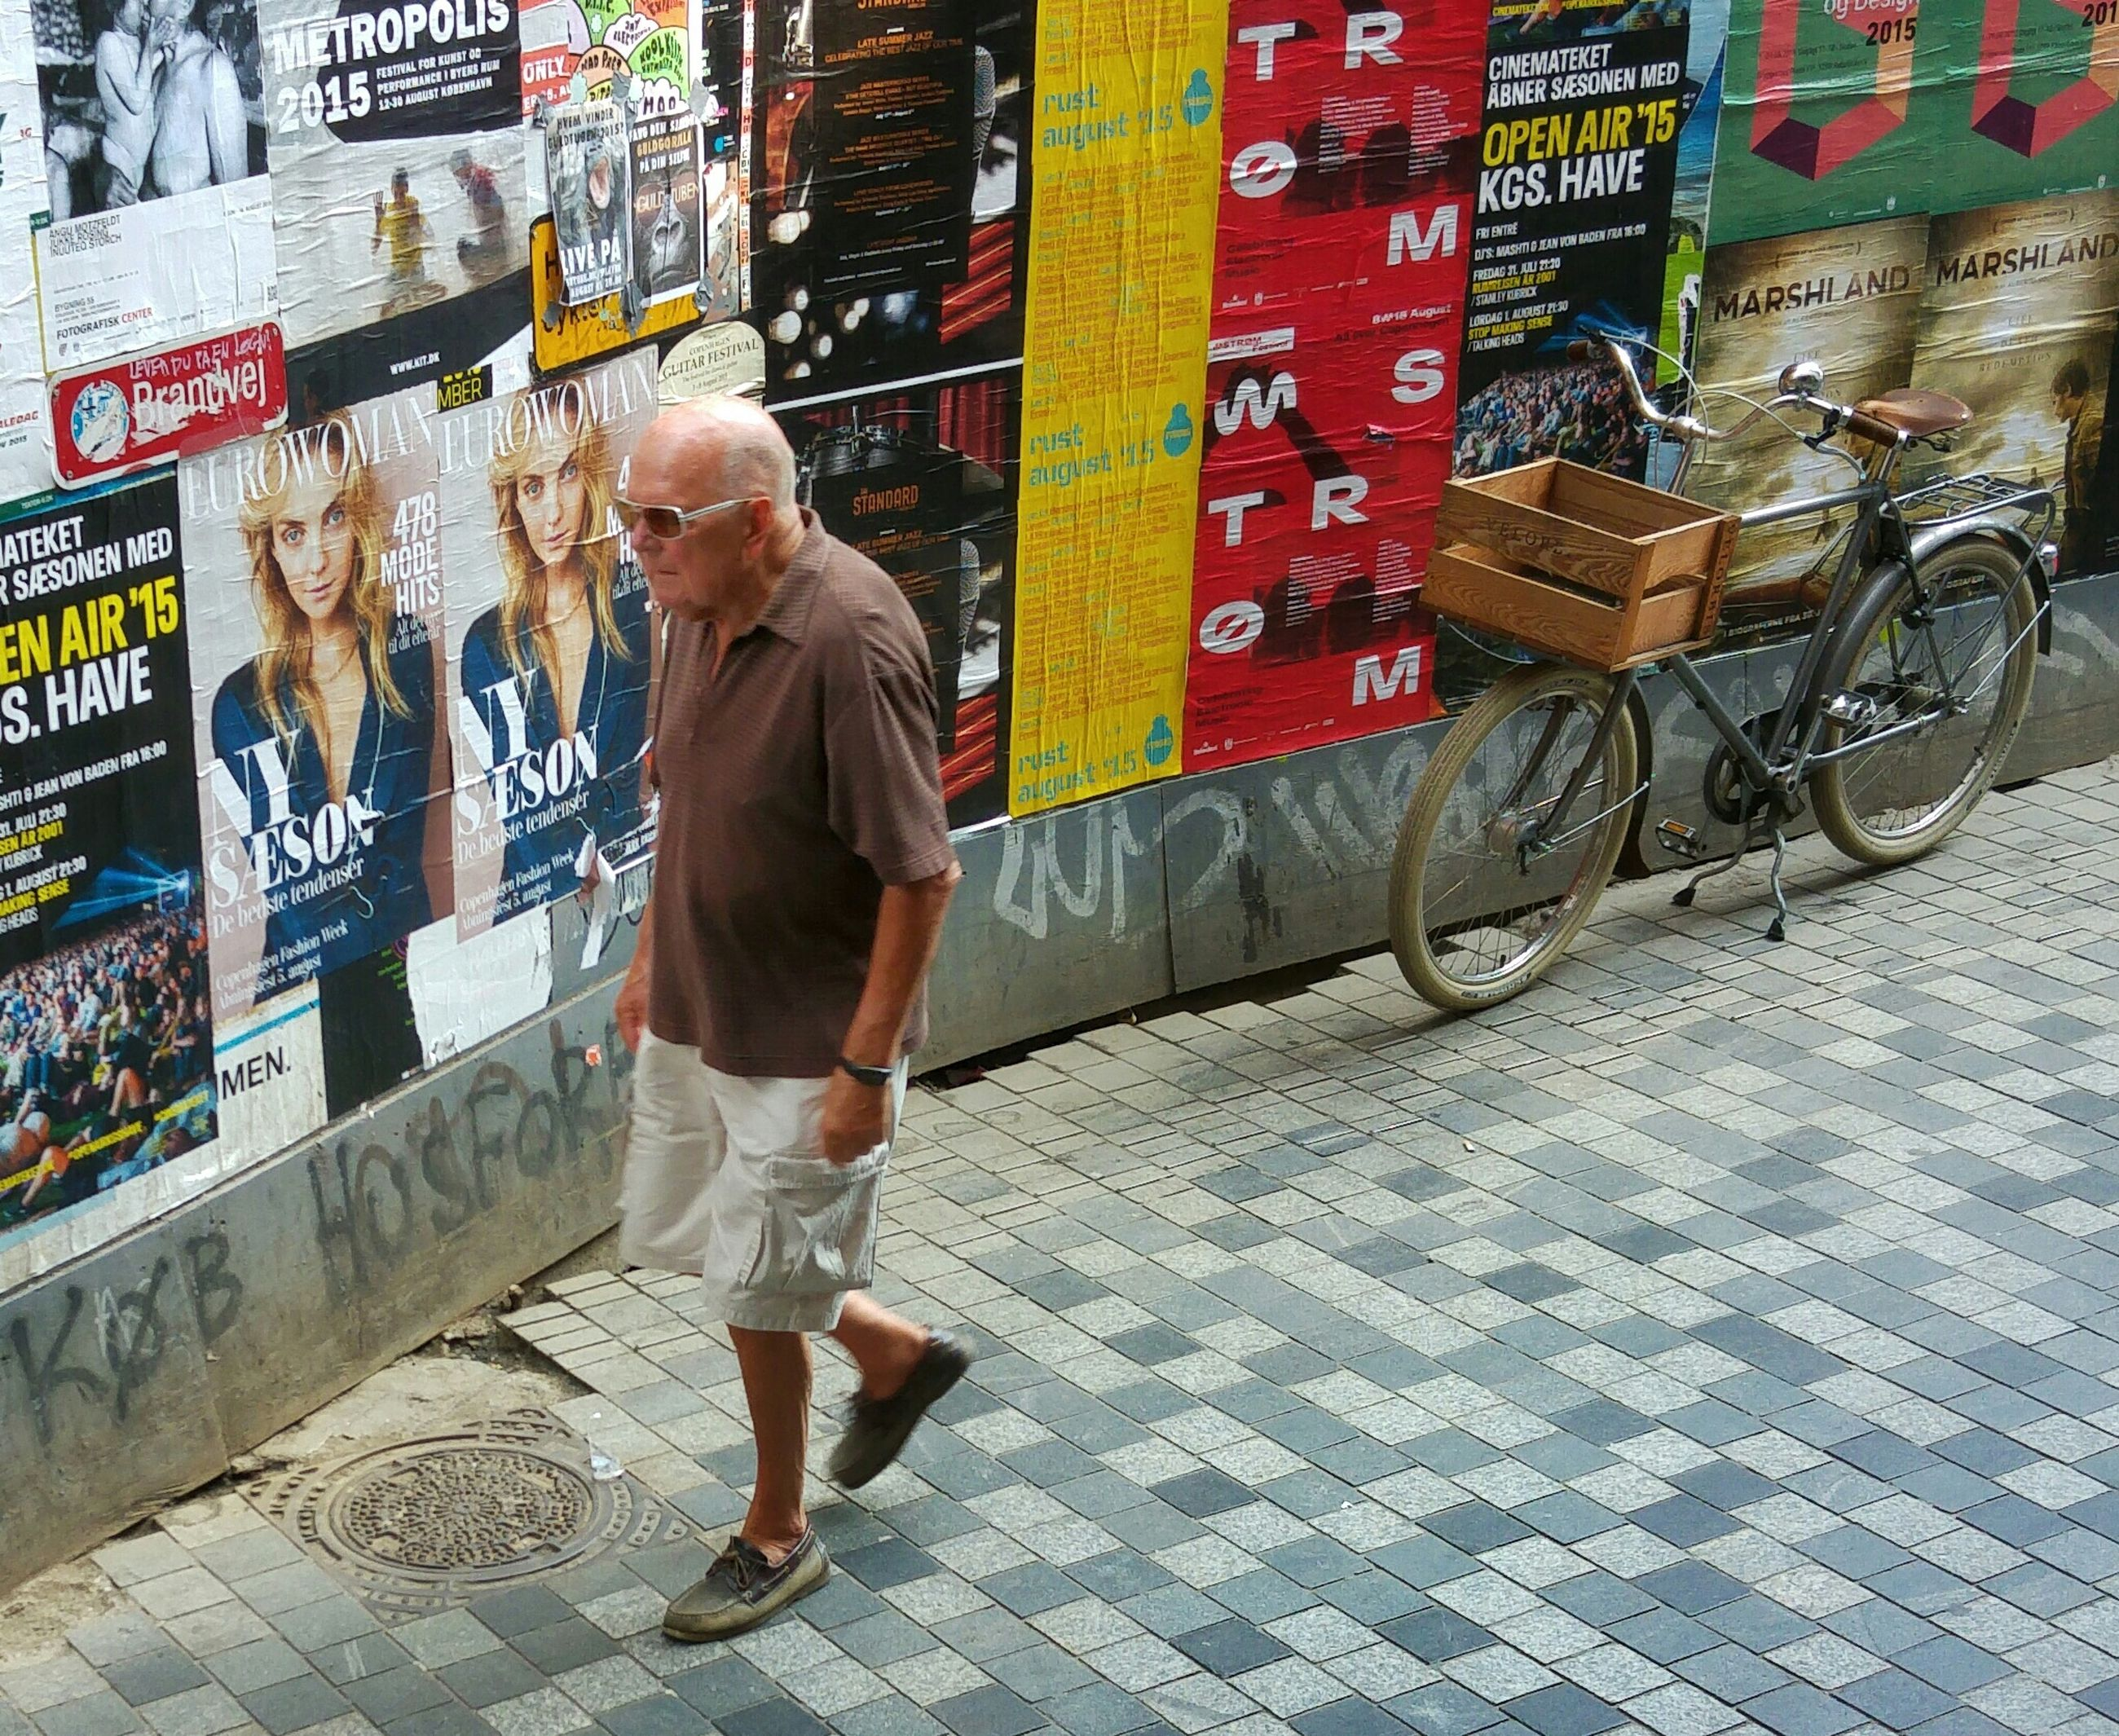 full length, lifestyles, casual clothing, text, street, graffiti, leisure activity, wall - building feature, built structure, architecture, childhood, sidewalk, building exterior, day, outdoors, walking, standing, boys